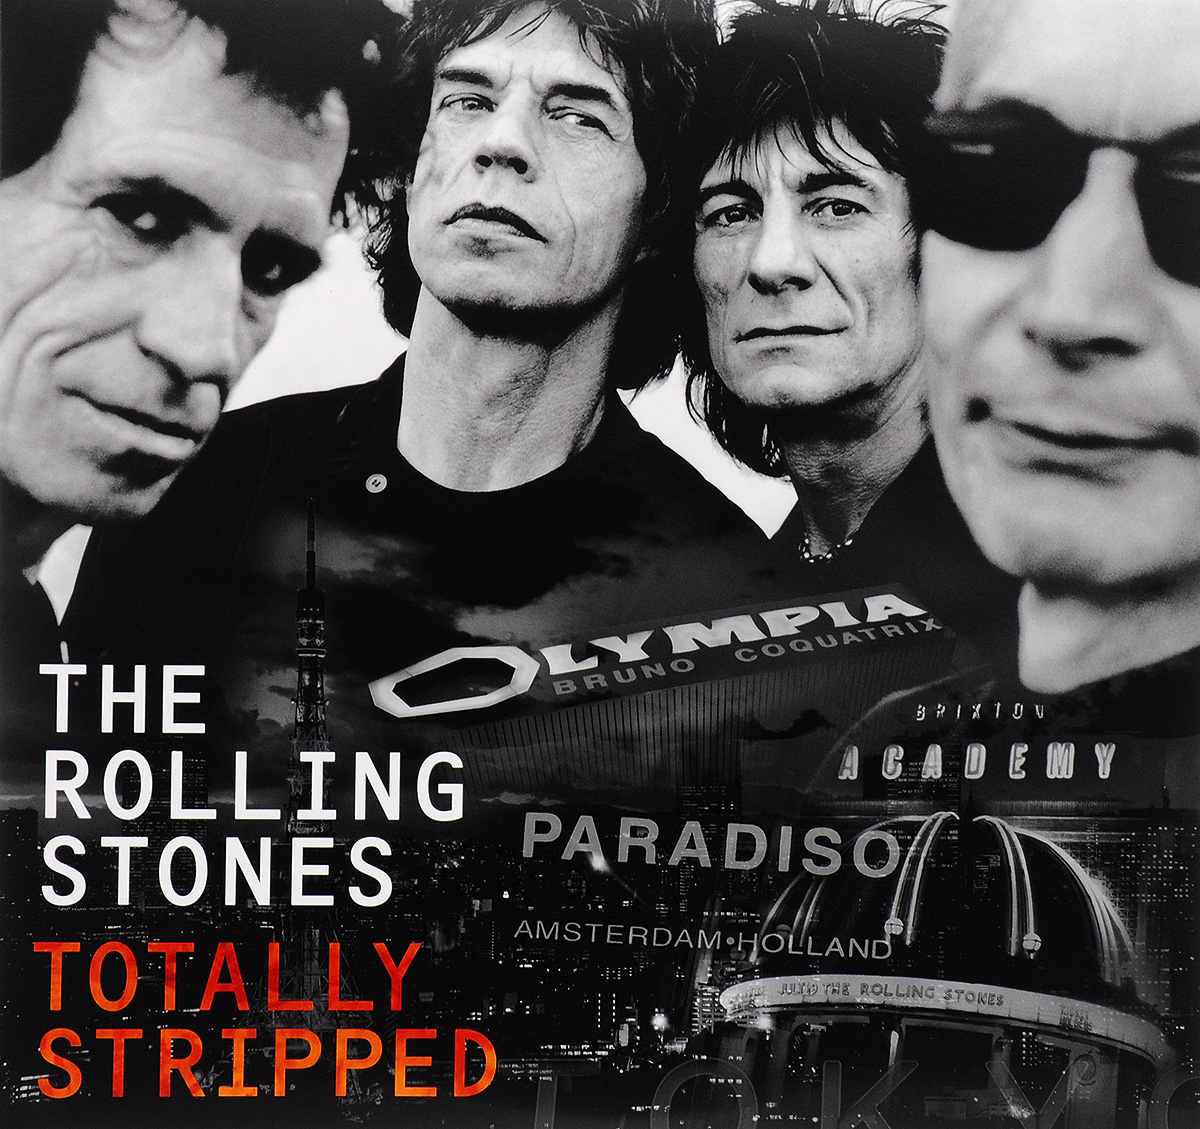 The Rolling Stones Rolling Stones. The Totally Stripped (2 LP + DVD) гардемарины 3 dvd